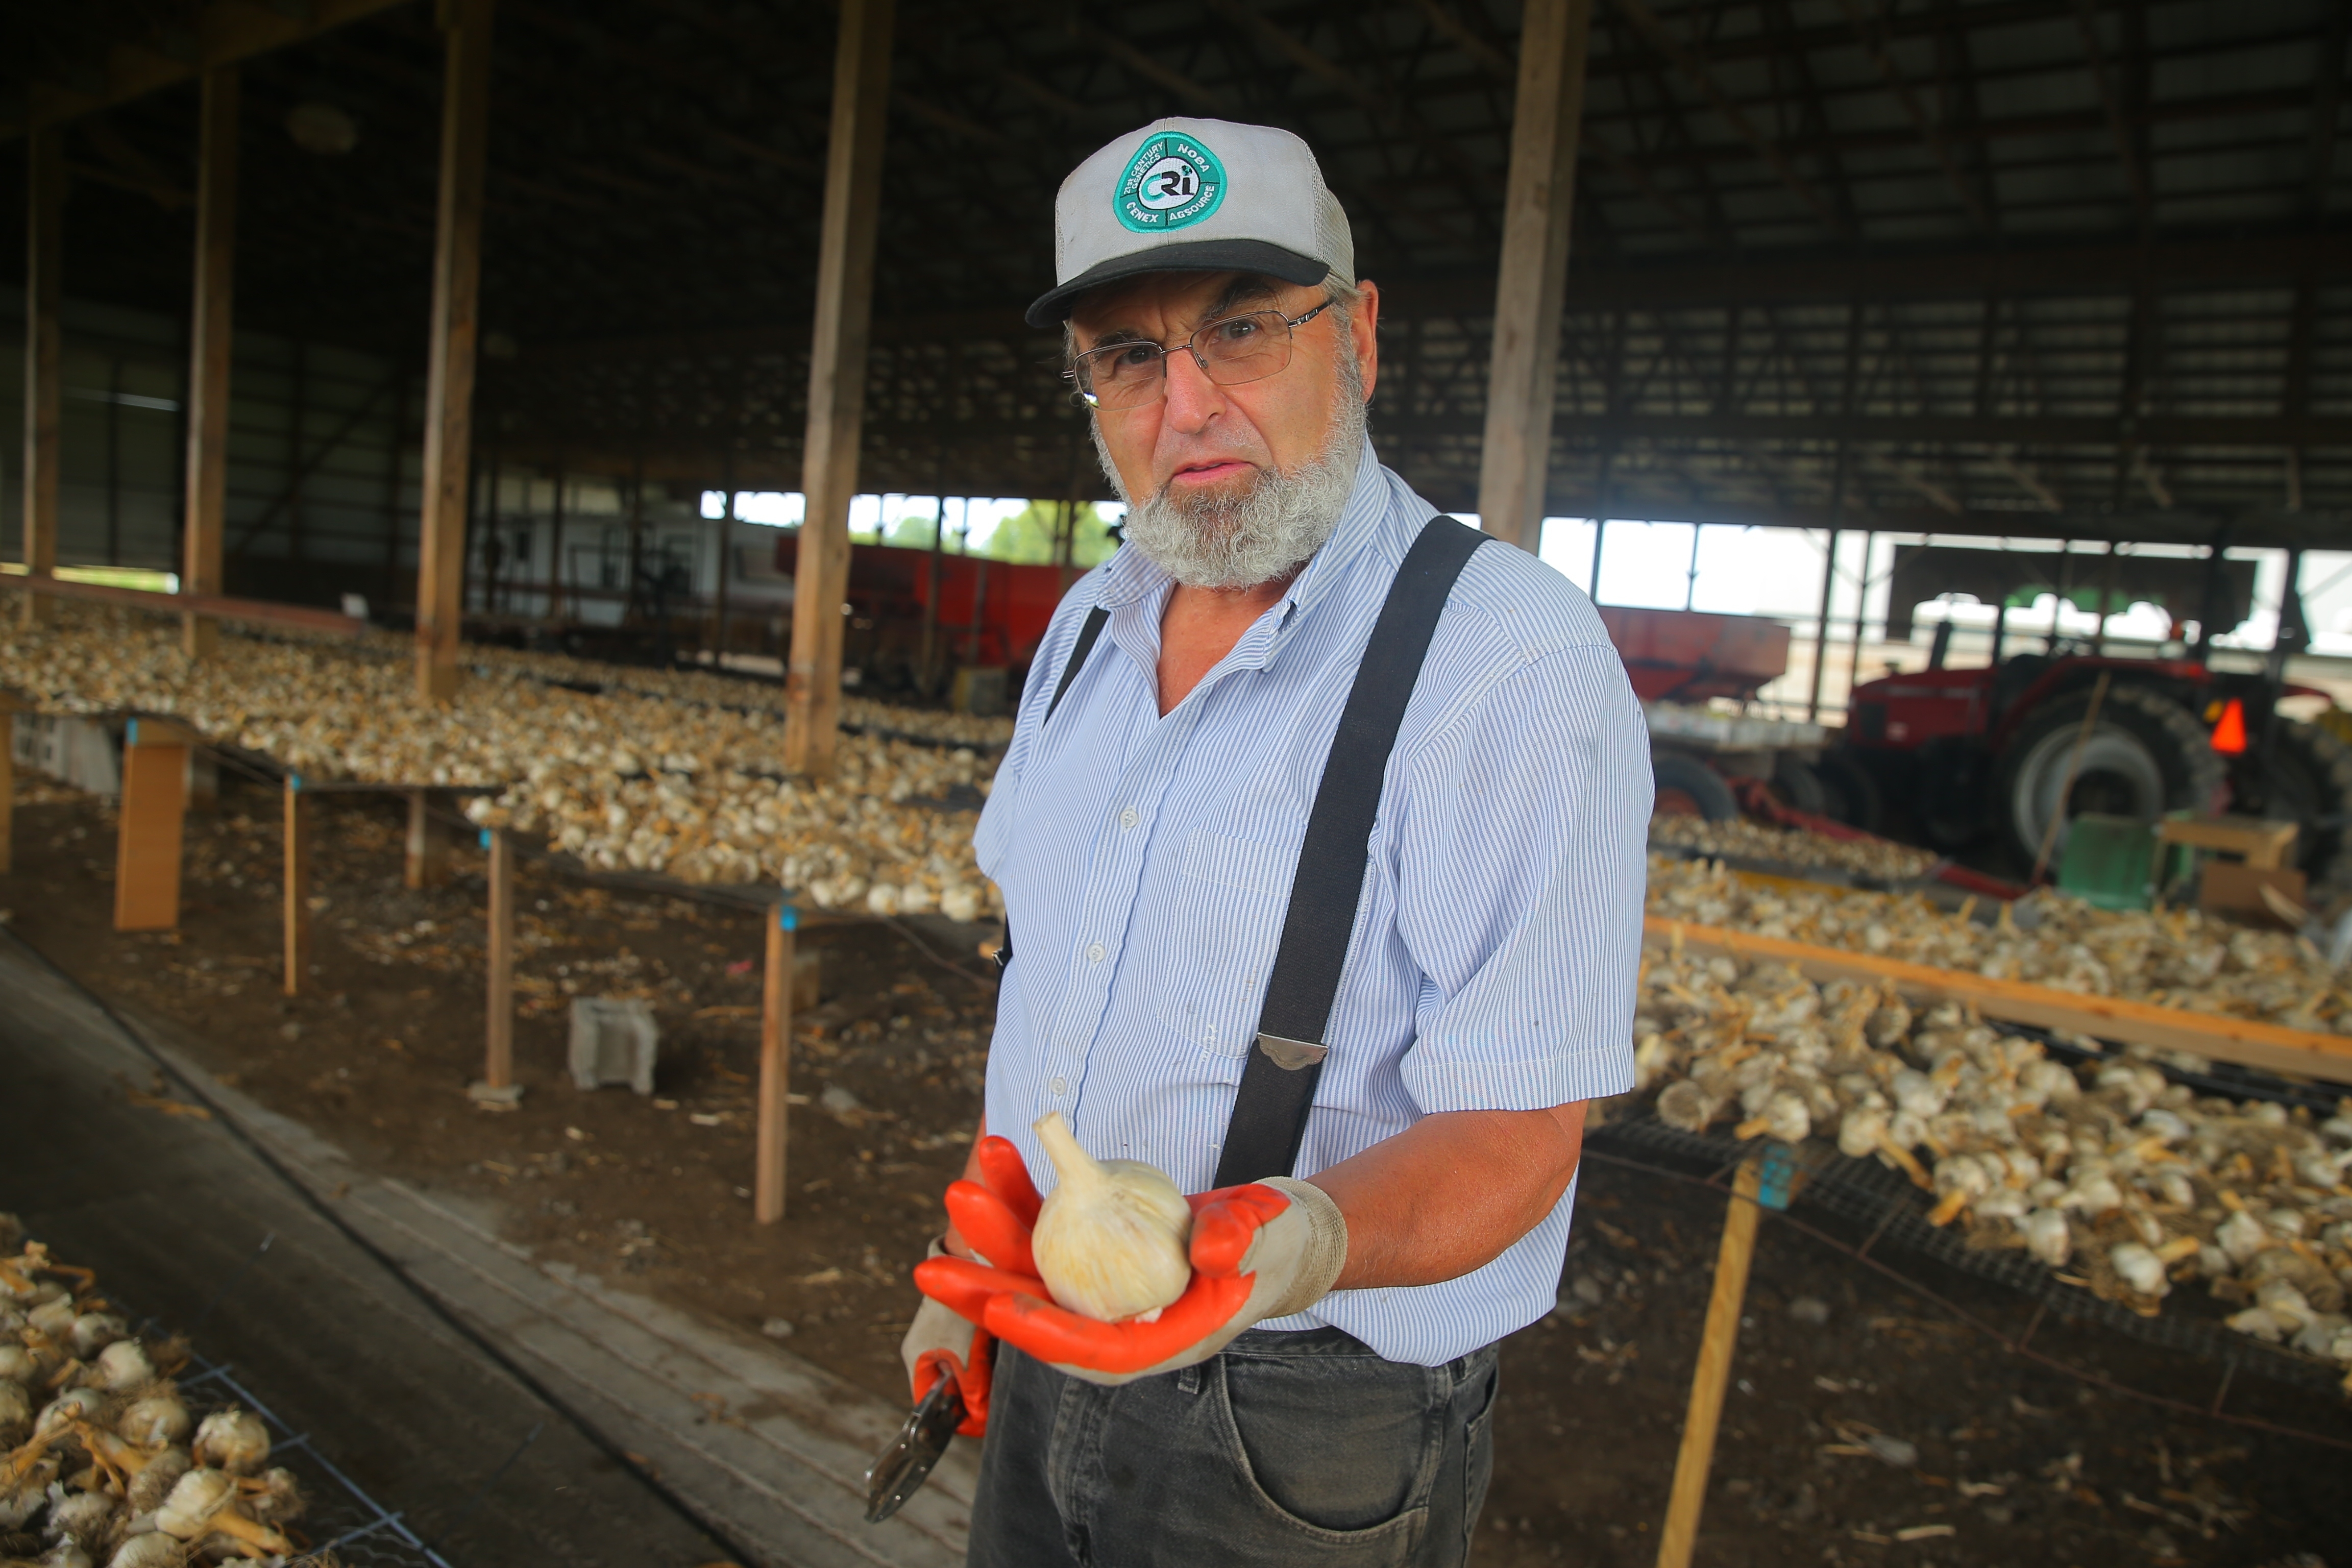 Bruce Muck and his harvest of garlic grown on his Wilson farm. The former dairy farmer turned to garlic, and this year he had his best crop ever, which he sells at farmers markets and his farm on Wilson-Cambria Road.